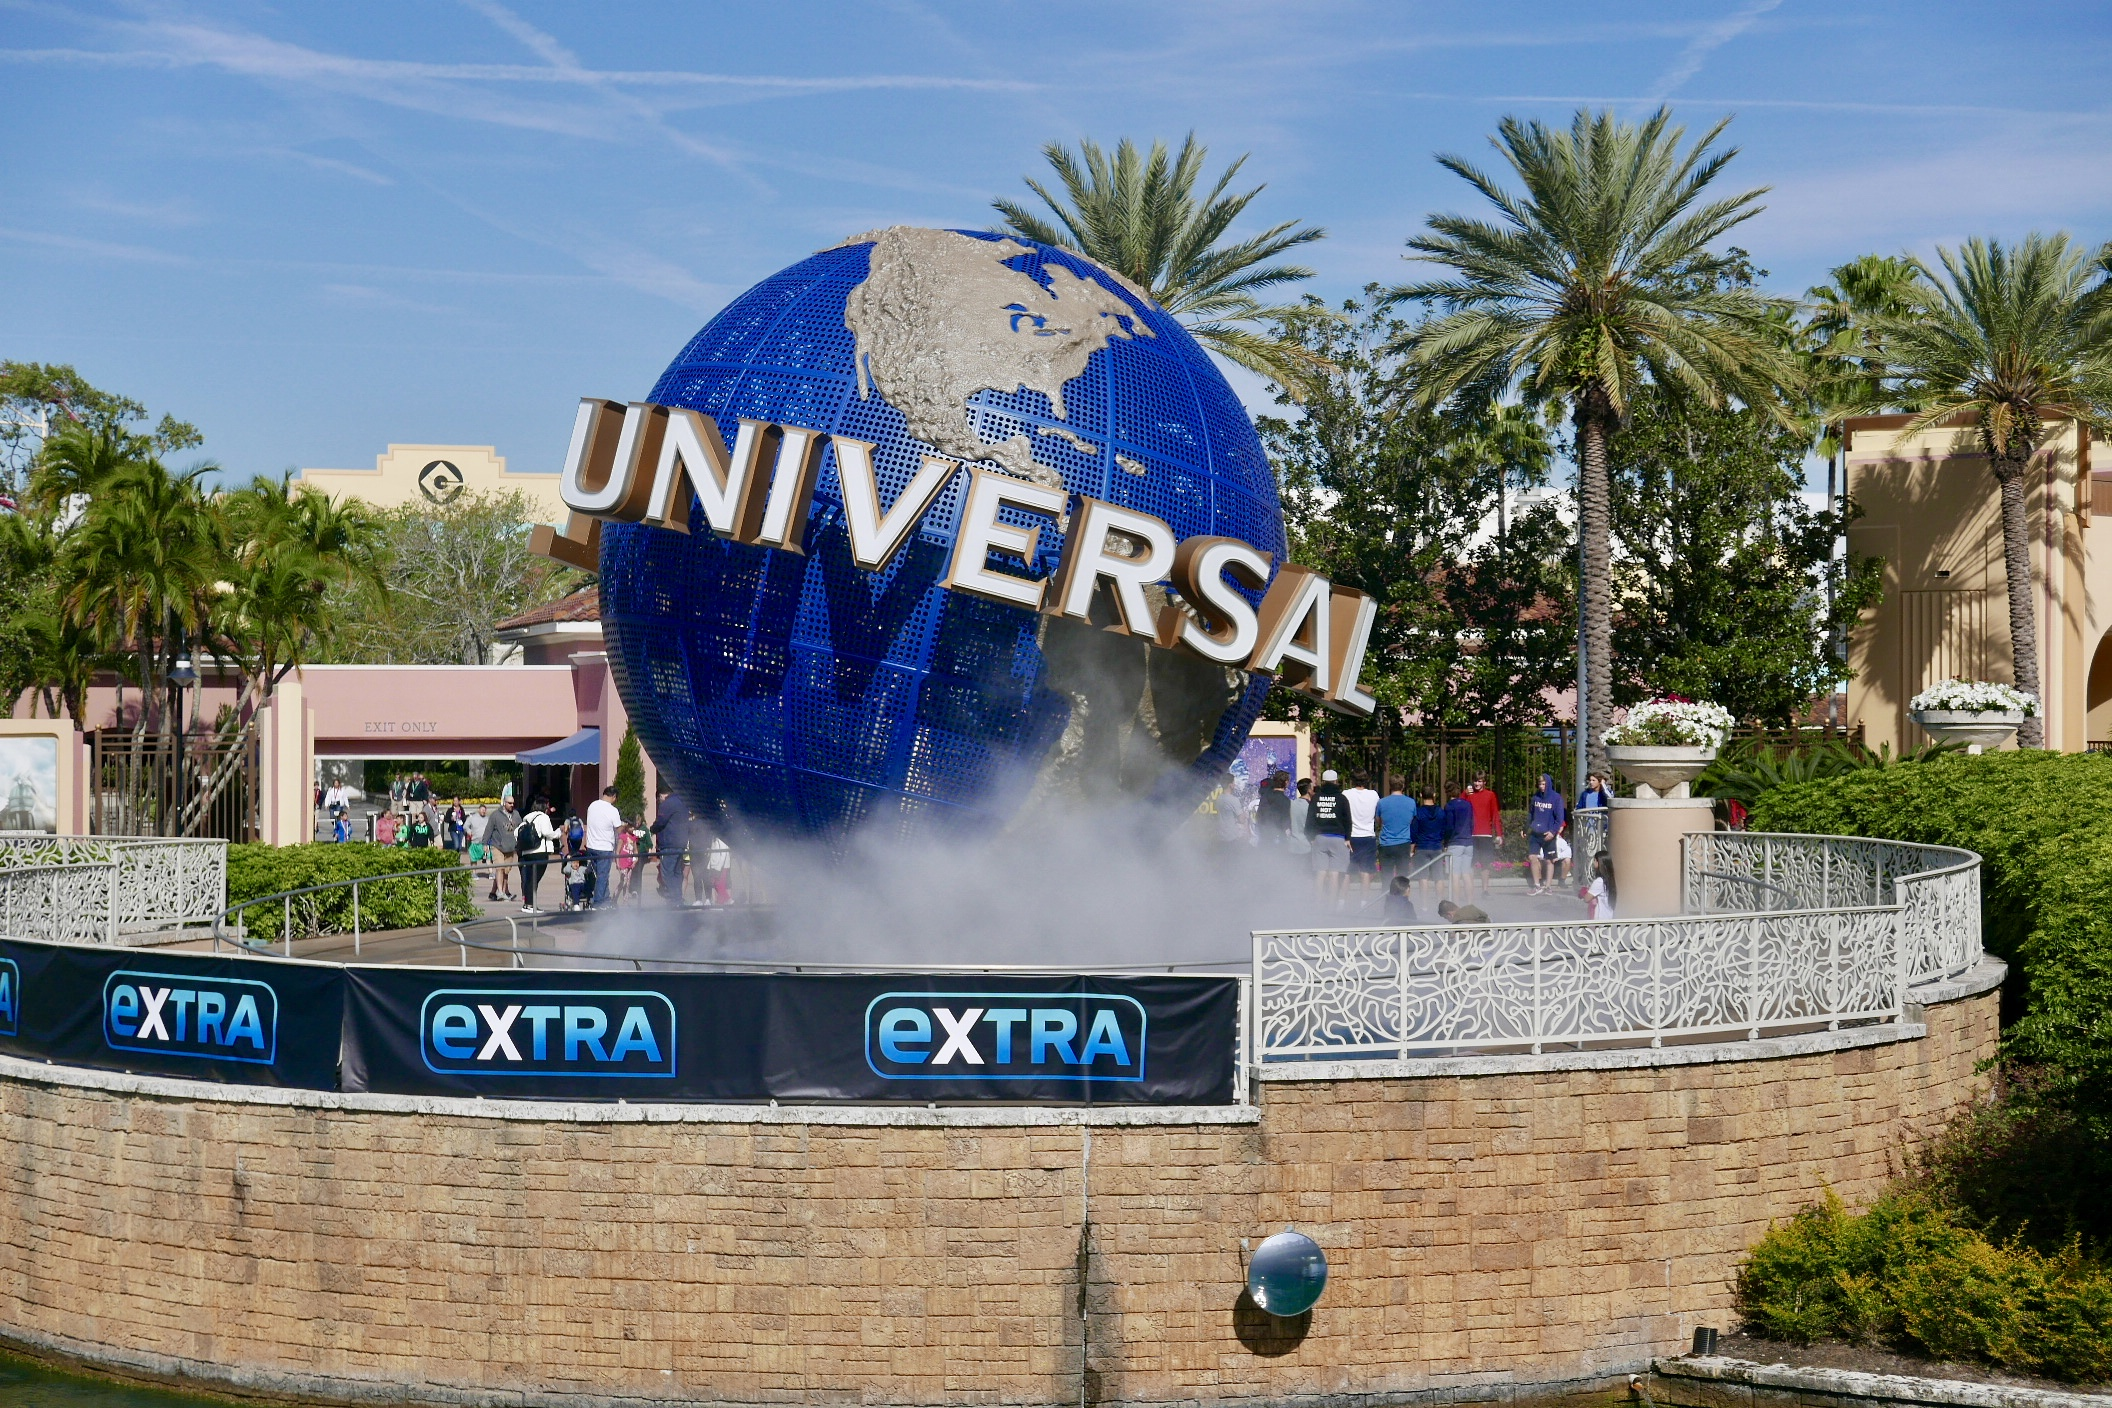 2 Days, 3 Parks: Our Orlando Adventures at Universal